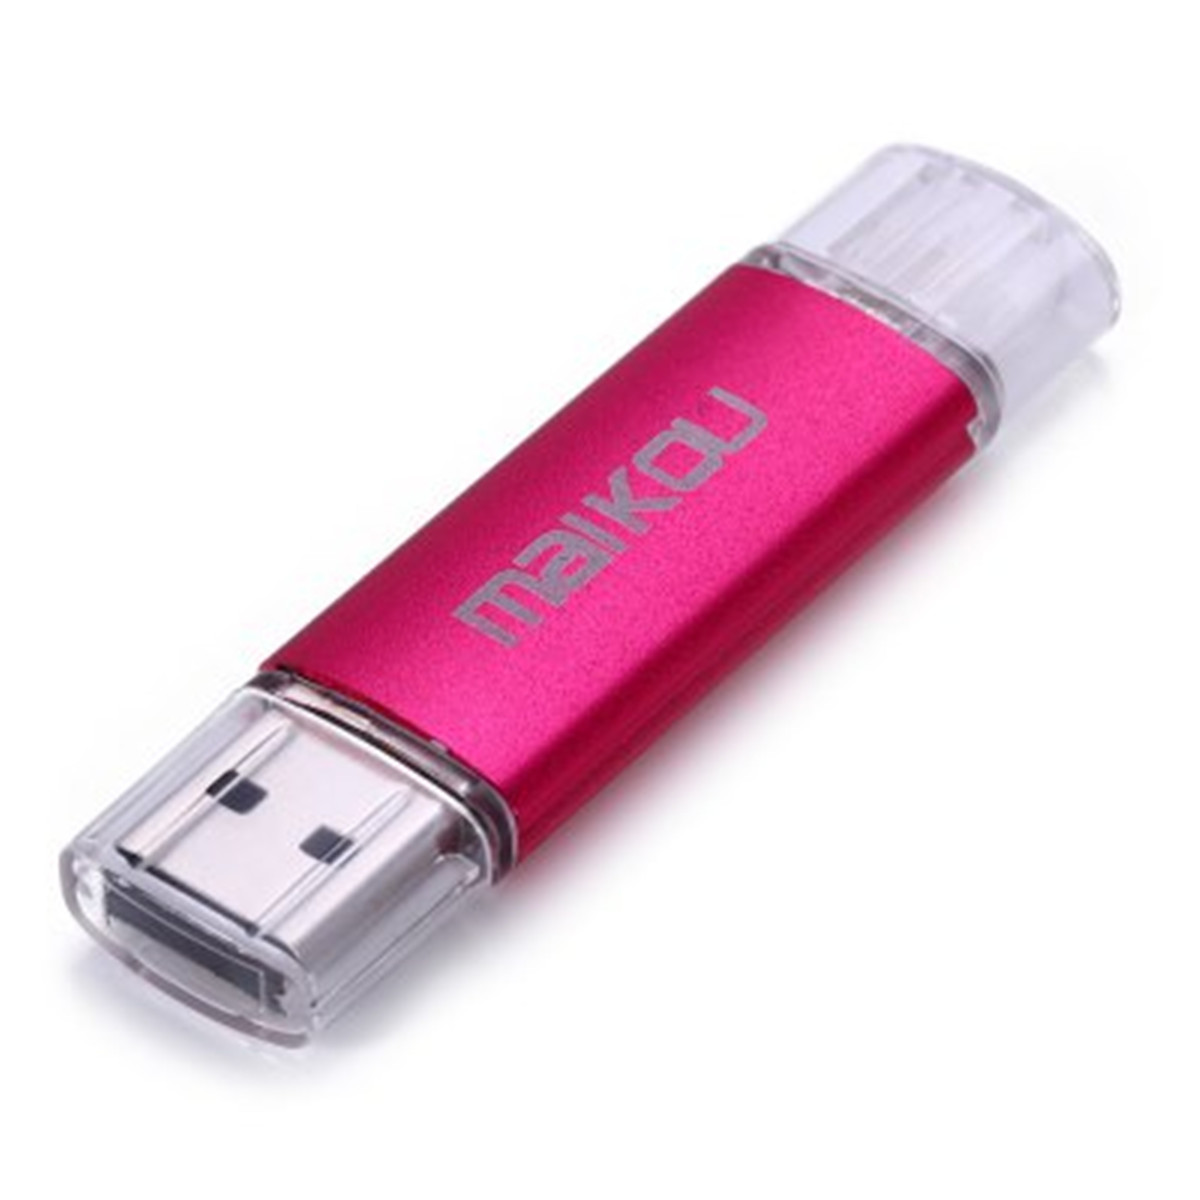 Flash Drive OTG USB U Disk Memory Stick for IOS Android 16GB Pink